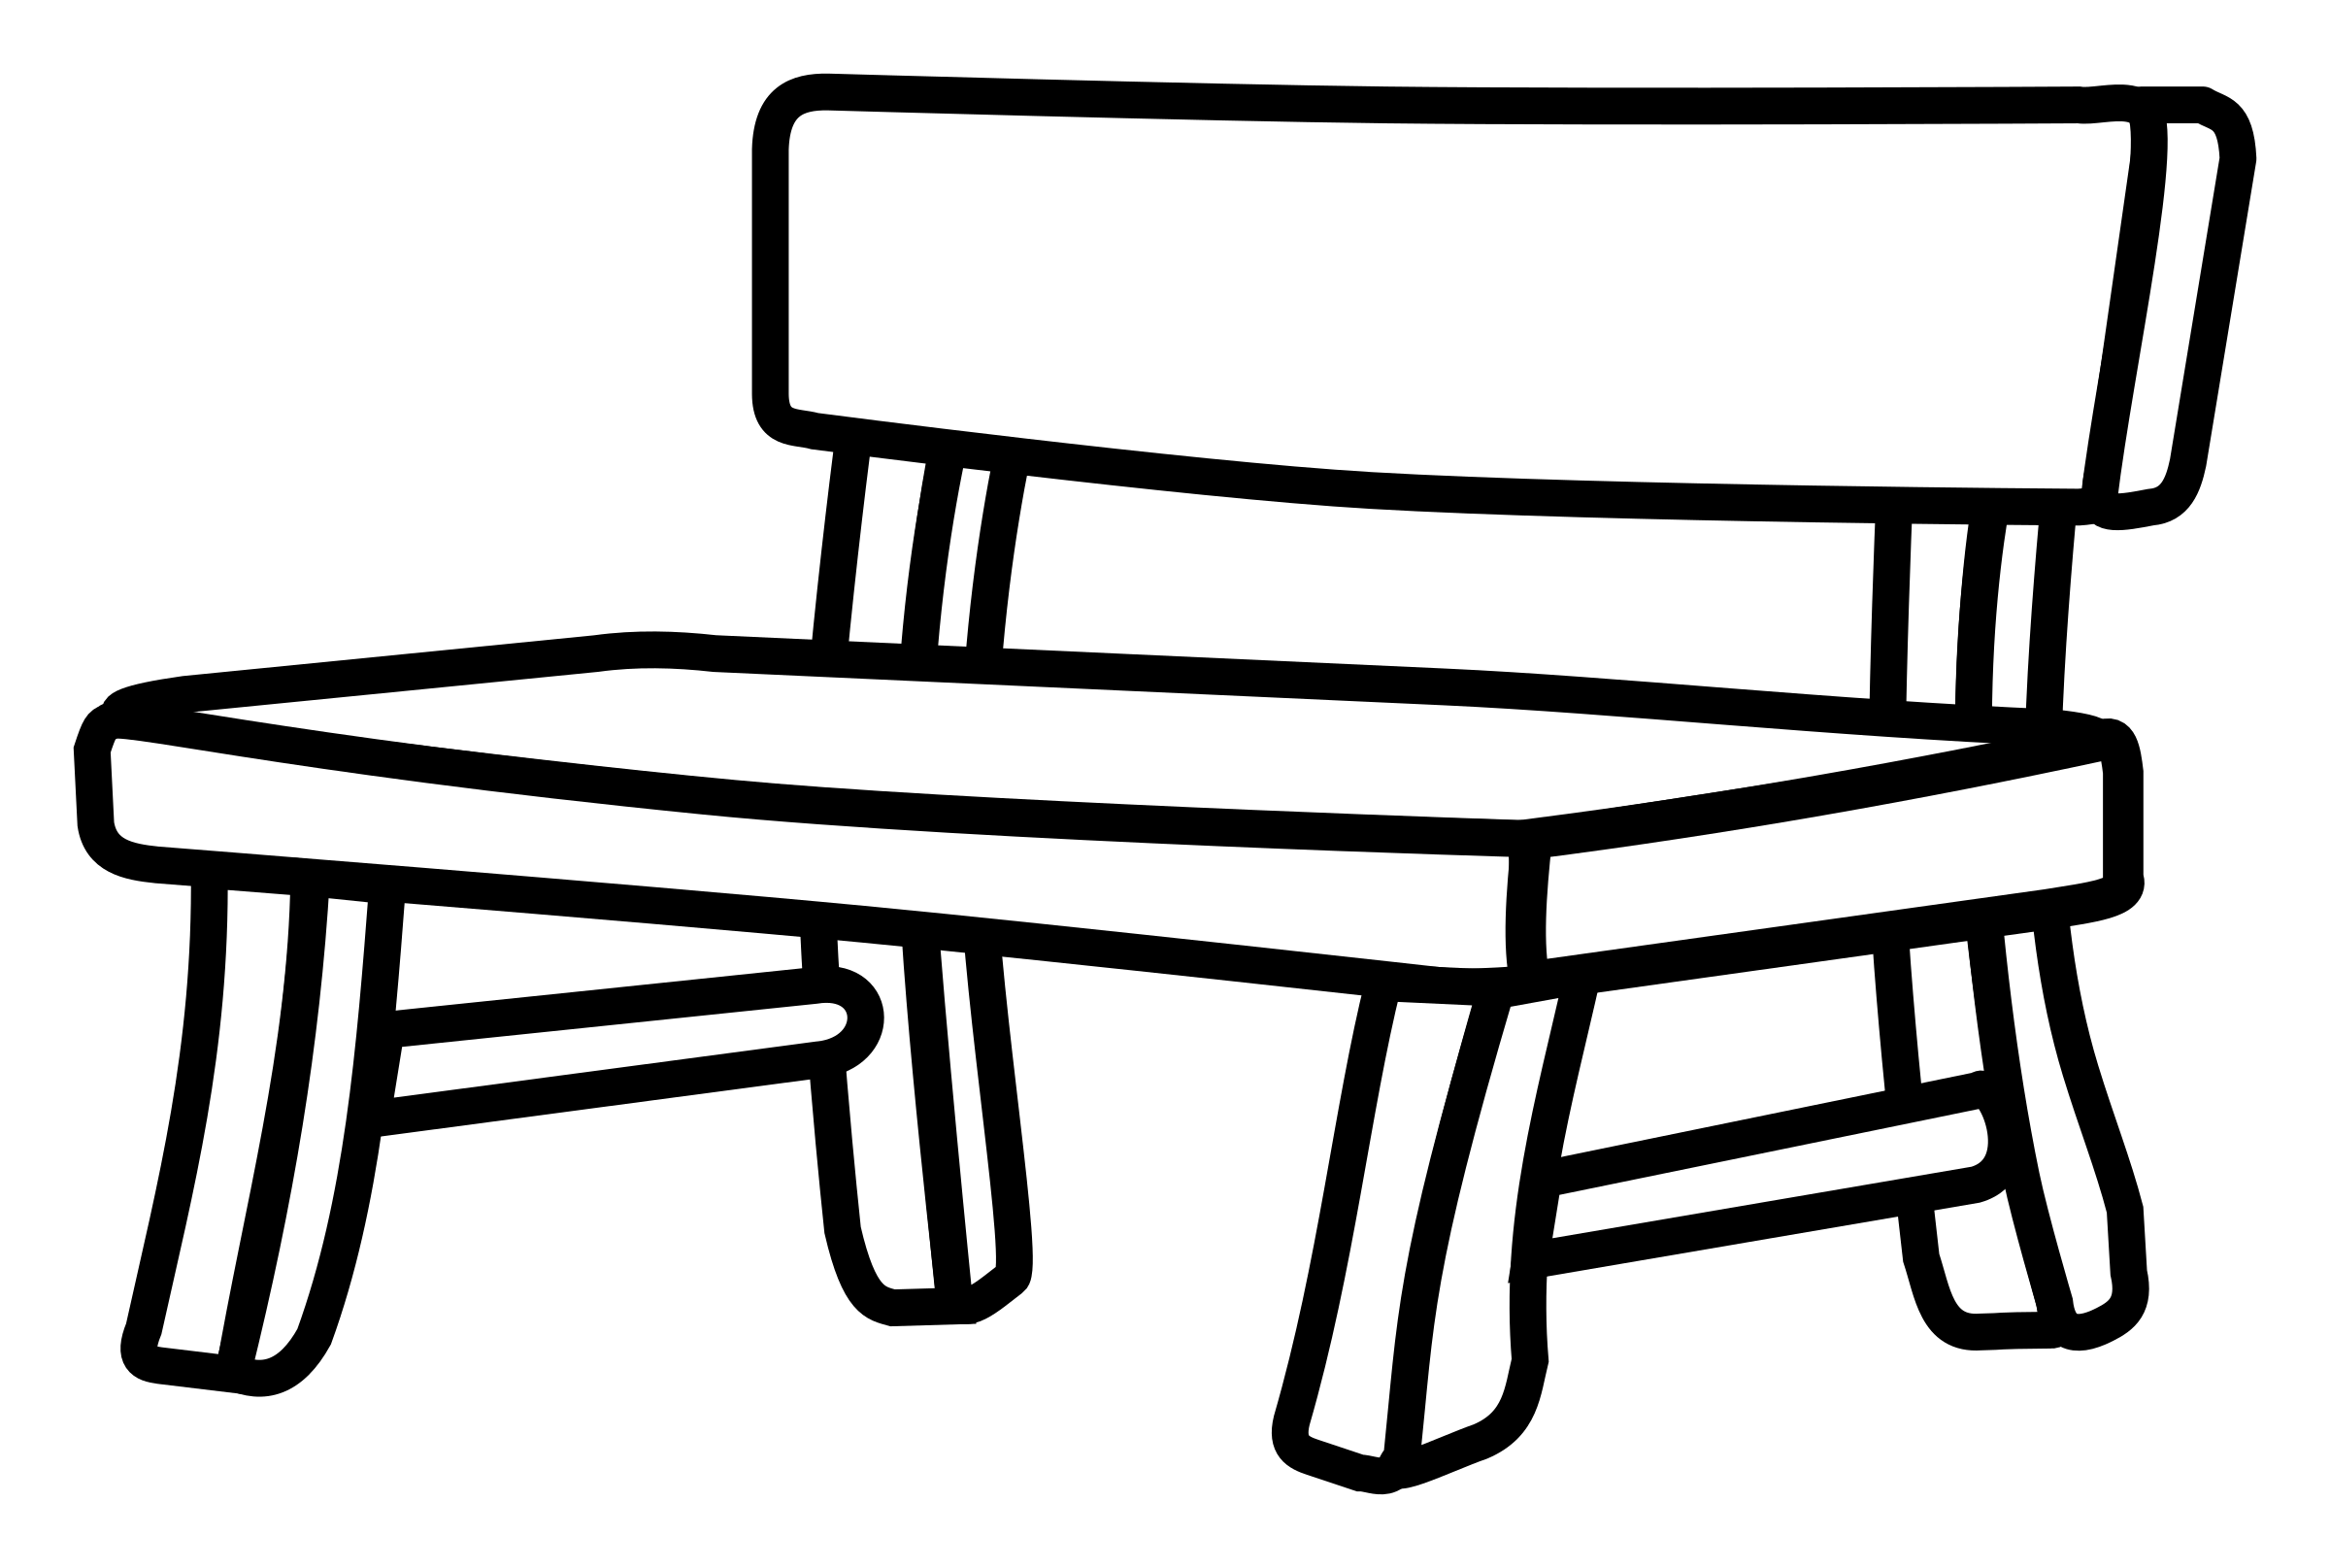 Bence black and white. Clipart park bench clipart